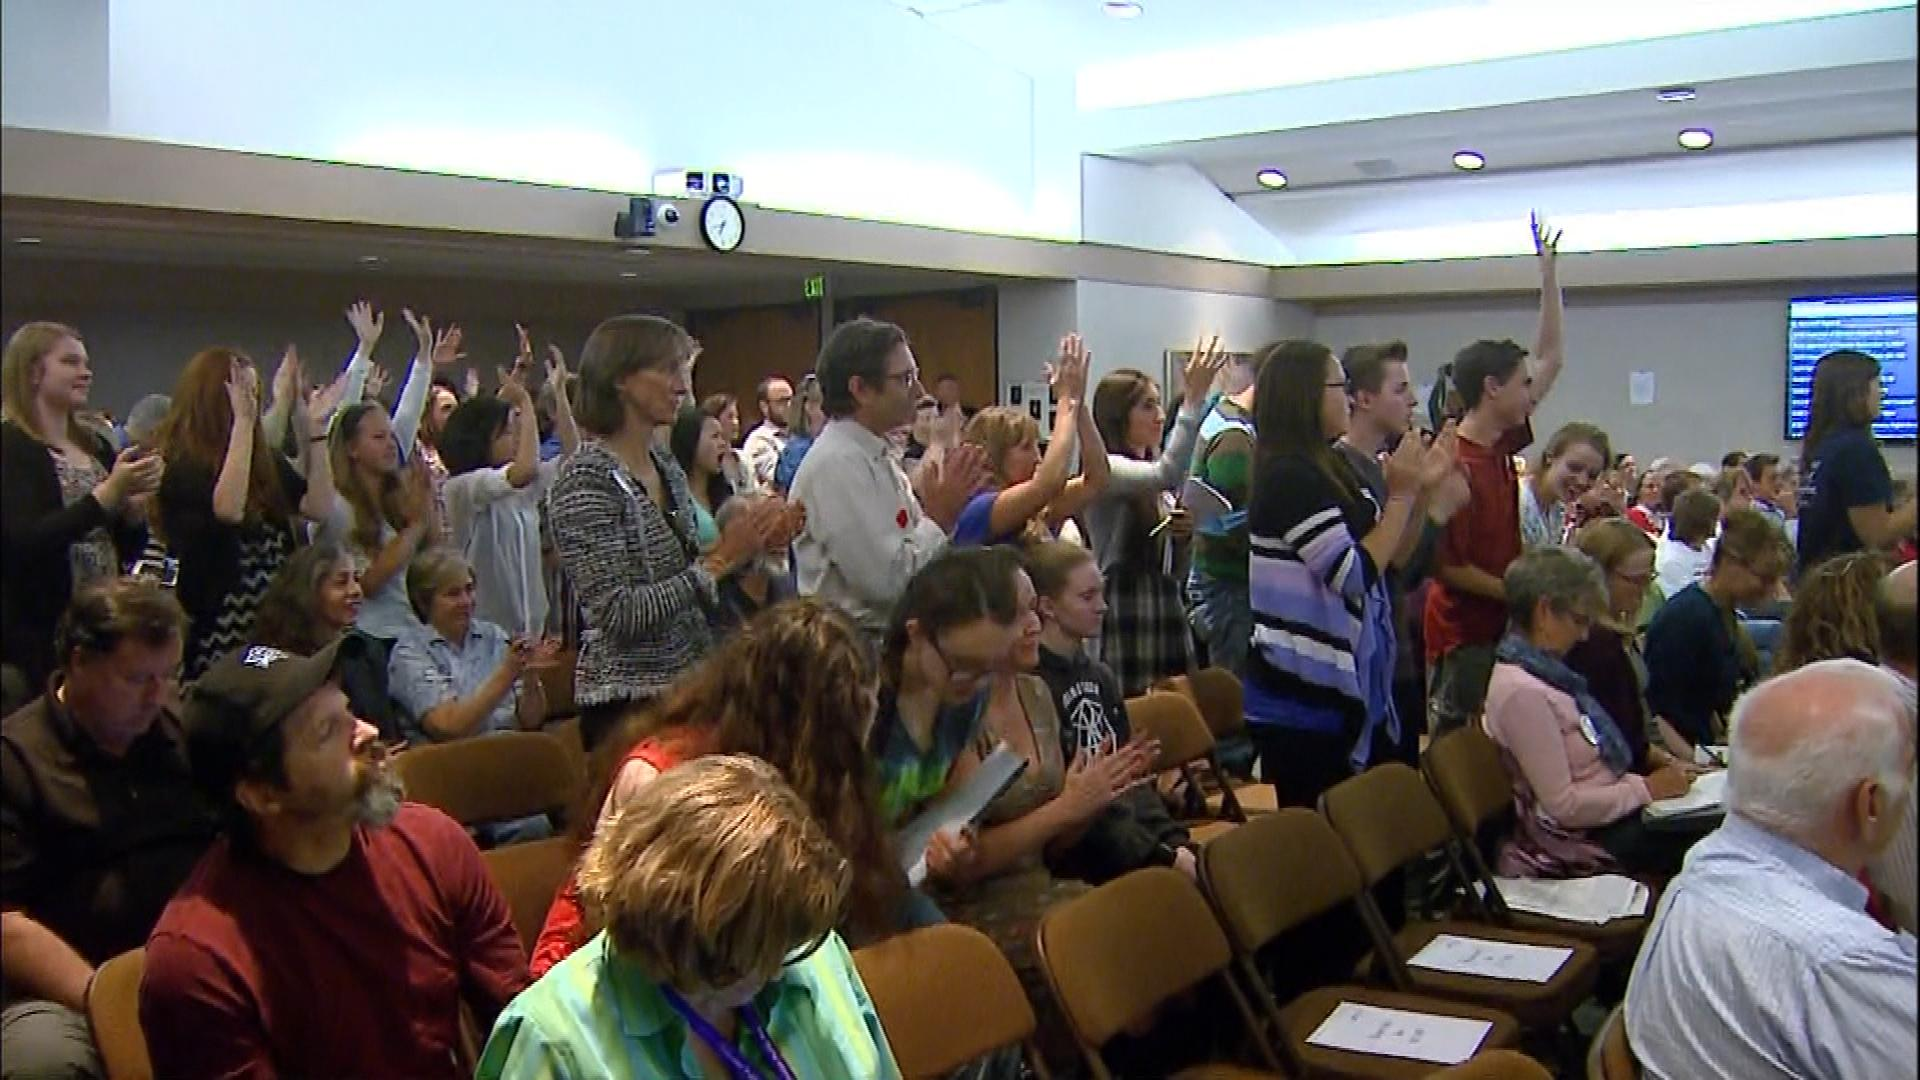 The crowd at the school board meeting on Thursday (credit: CBS)